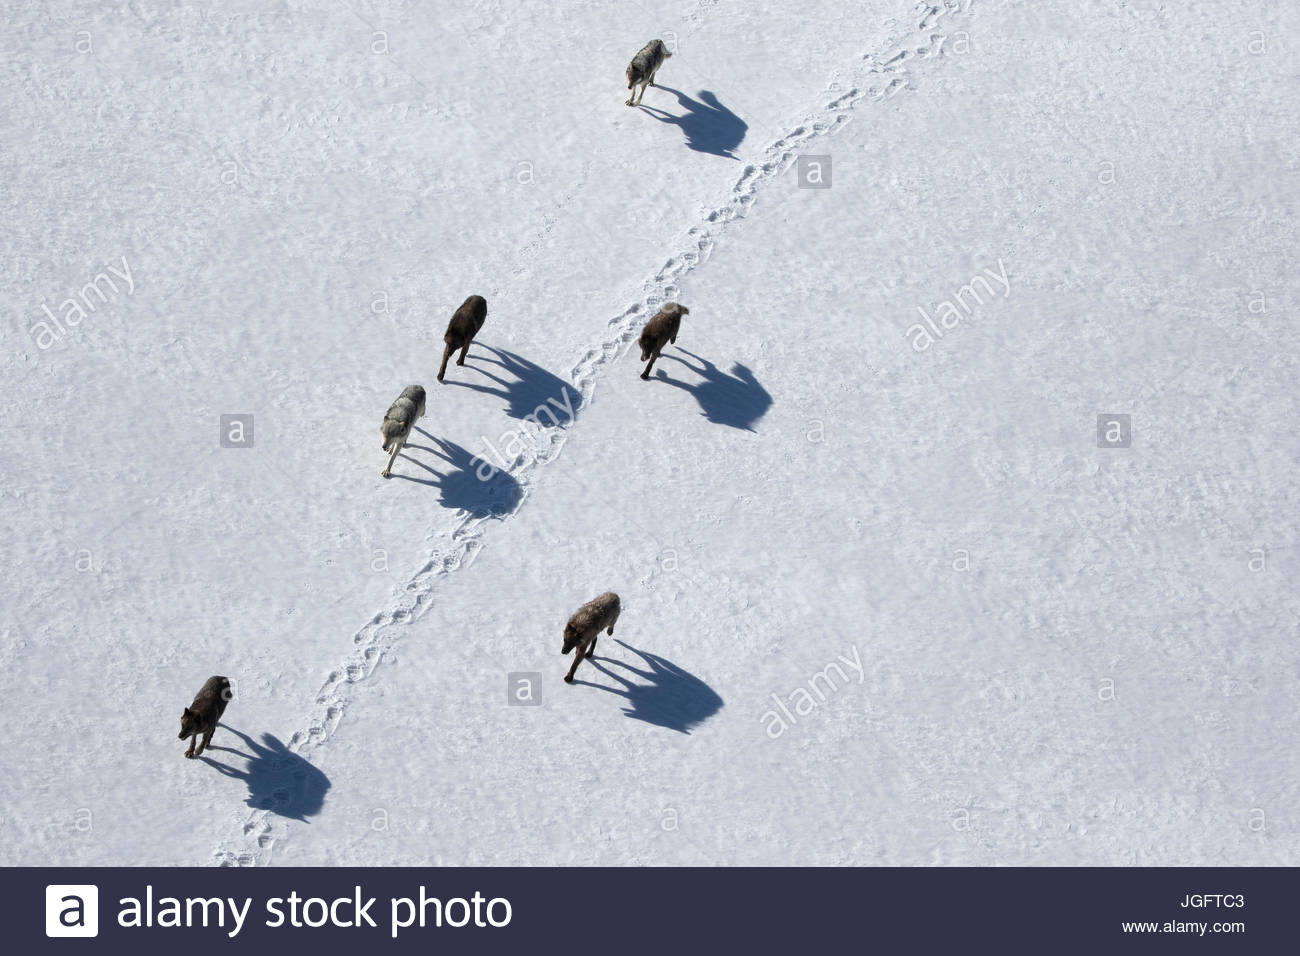 A pack of gray wolves on the move in Wyoming's Yellowstone National Park. - Stock Image